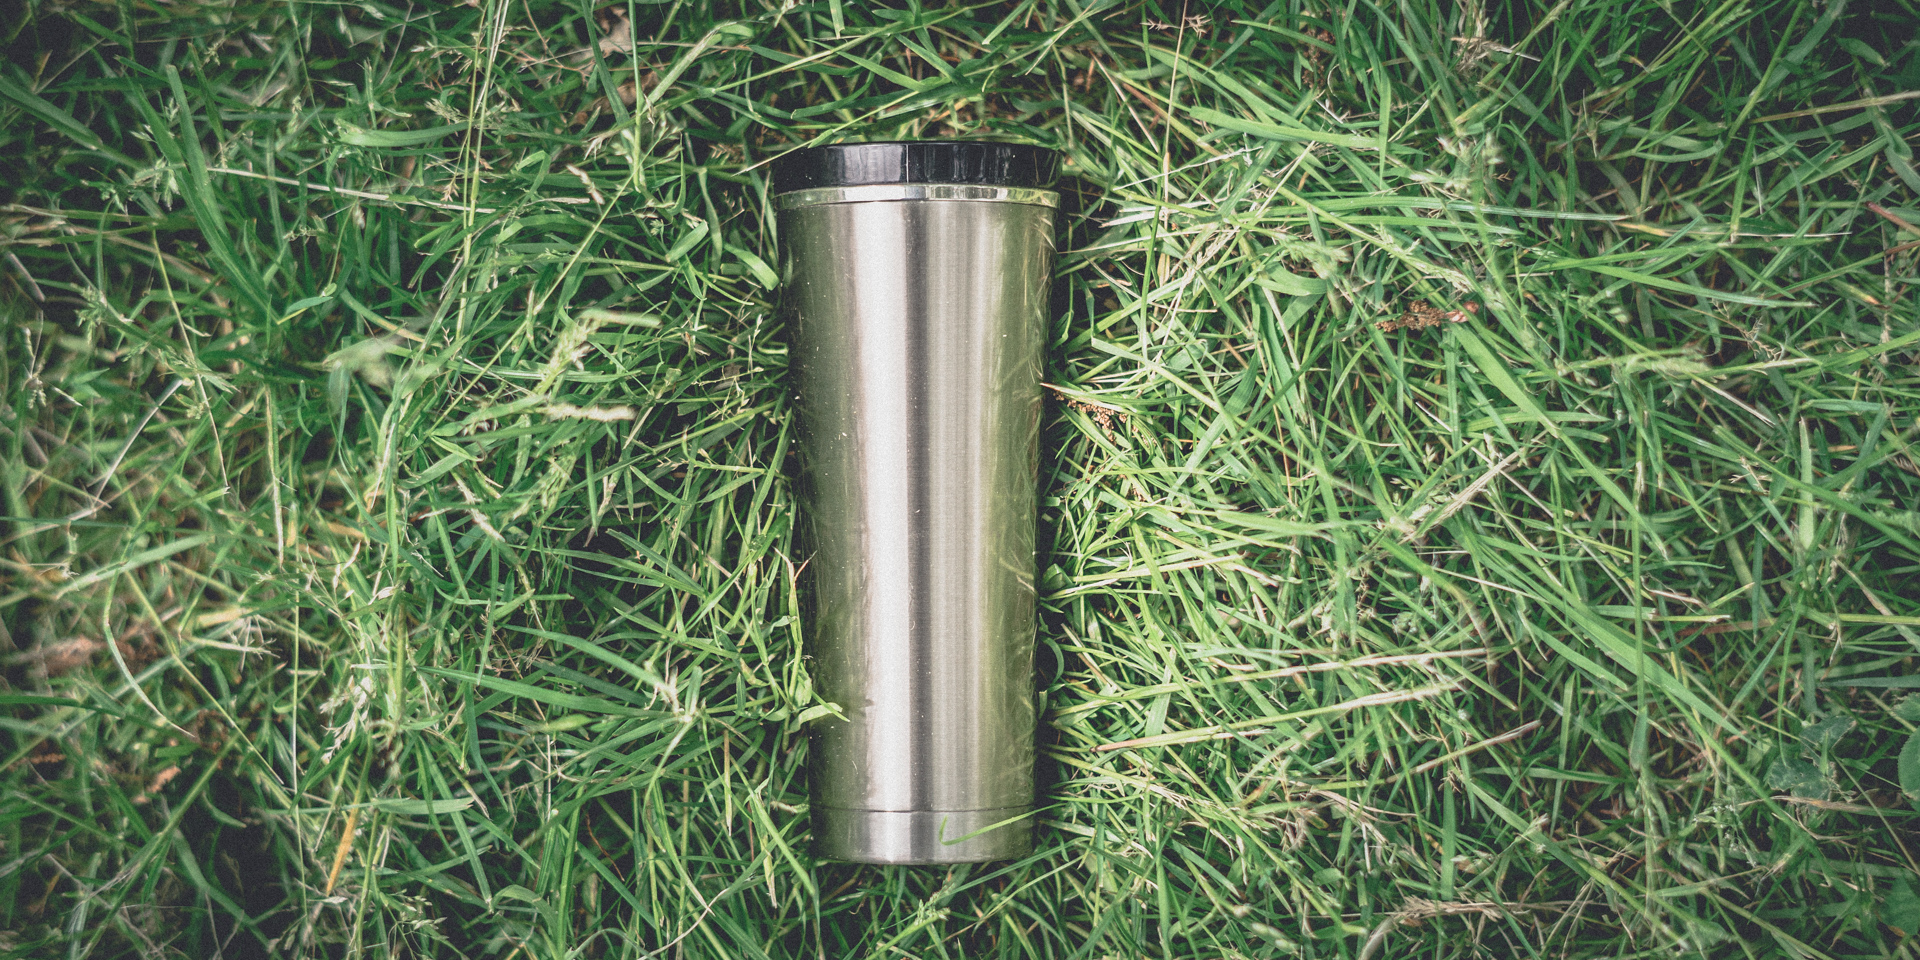 Thermos Discovery on Grass